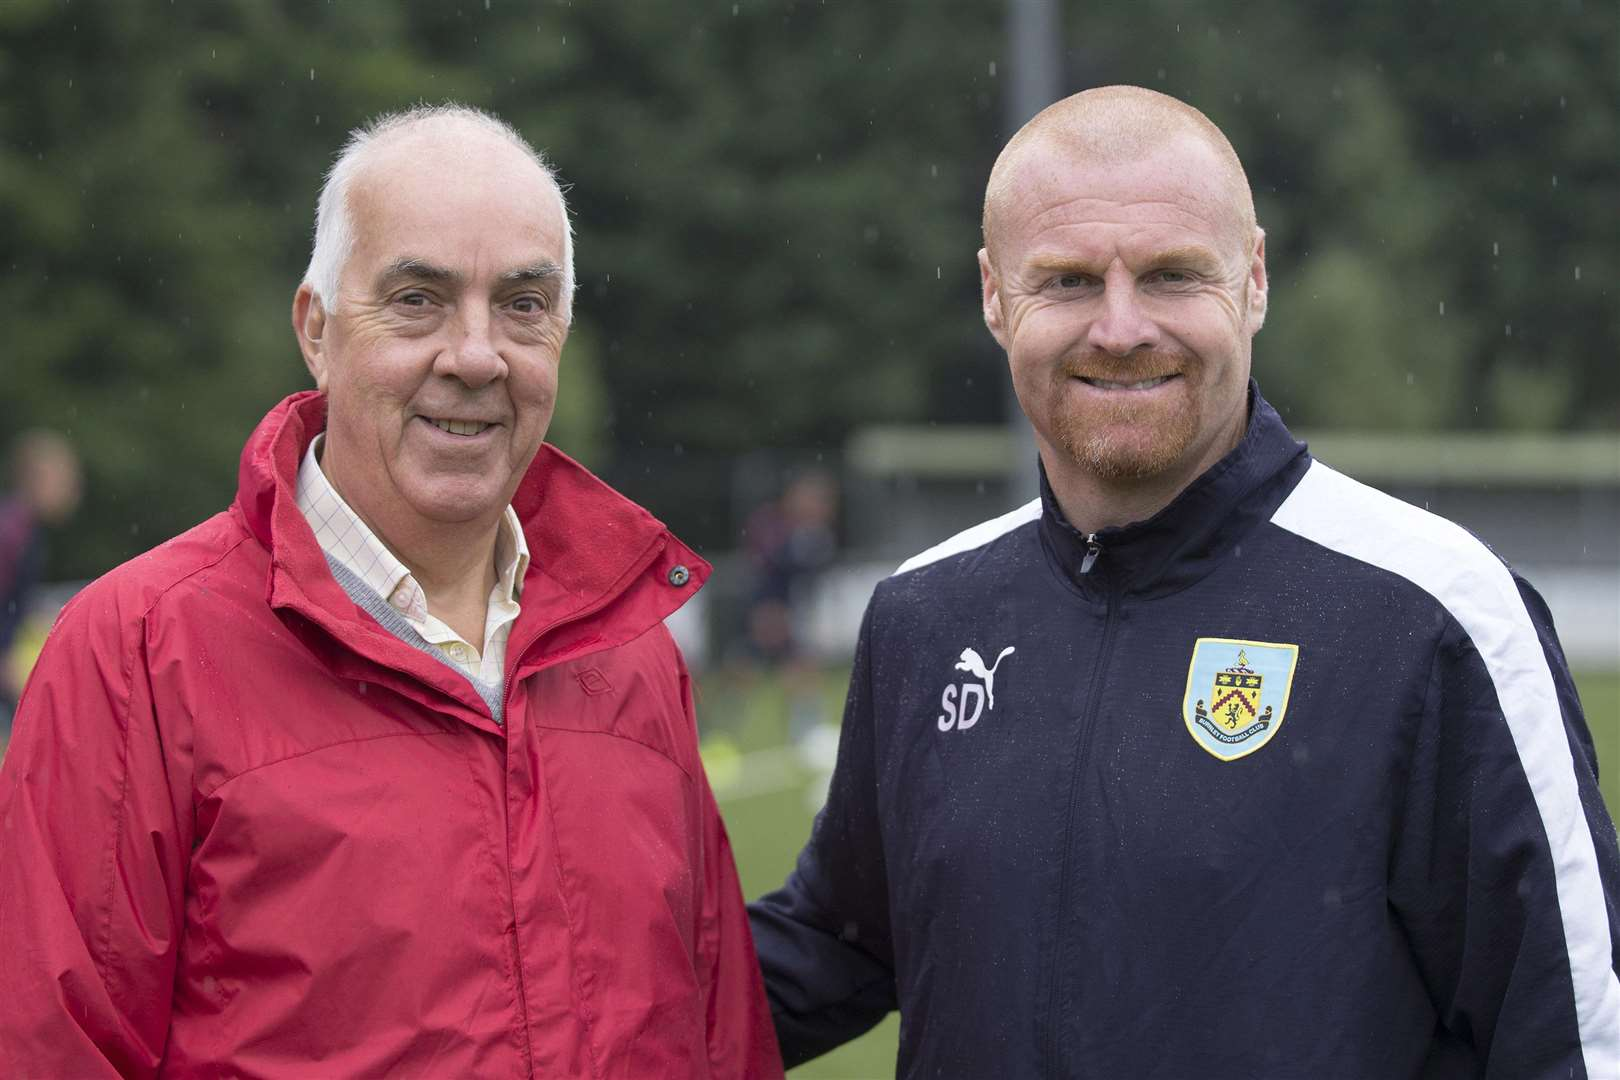 Championship team Burmley City train on AFC Sudburys new 3G allweather pitch before ther game at Ipswich Town..Philip Turner Sudbury chairman with Burnley manager Sean Dyche.Picture Mark Westley. (7014799)